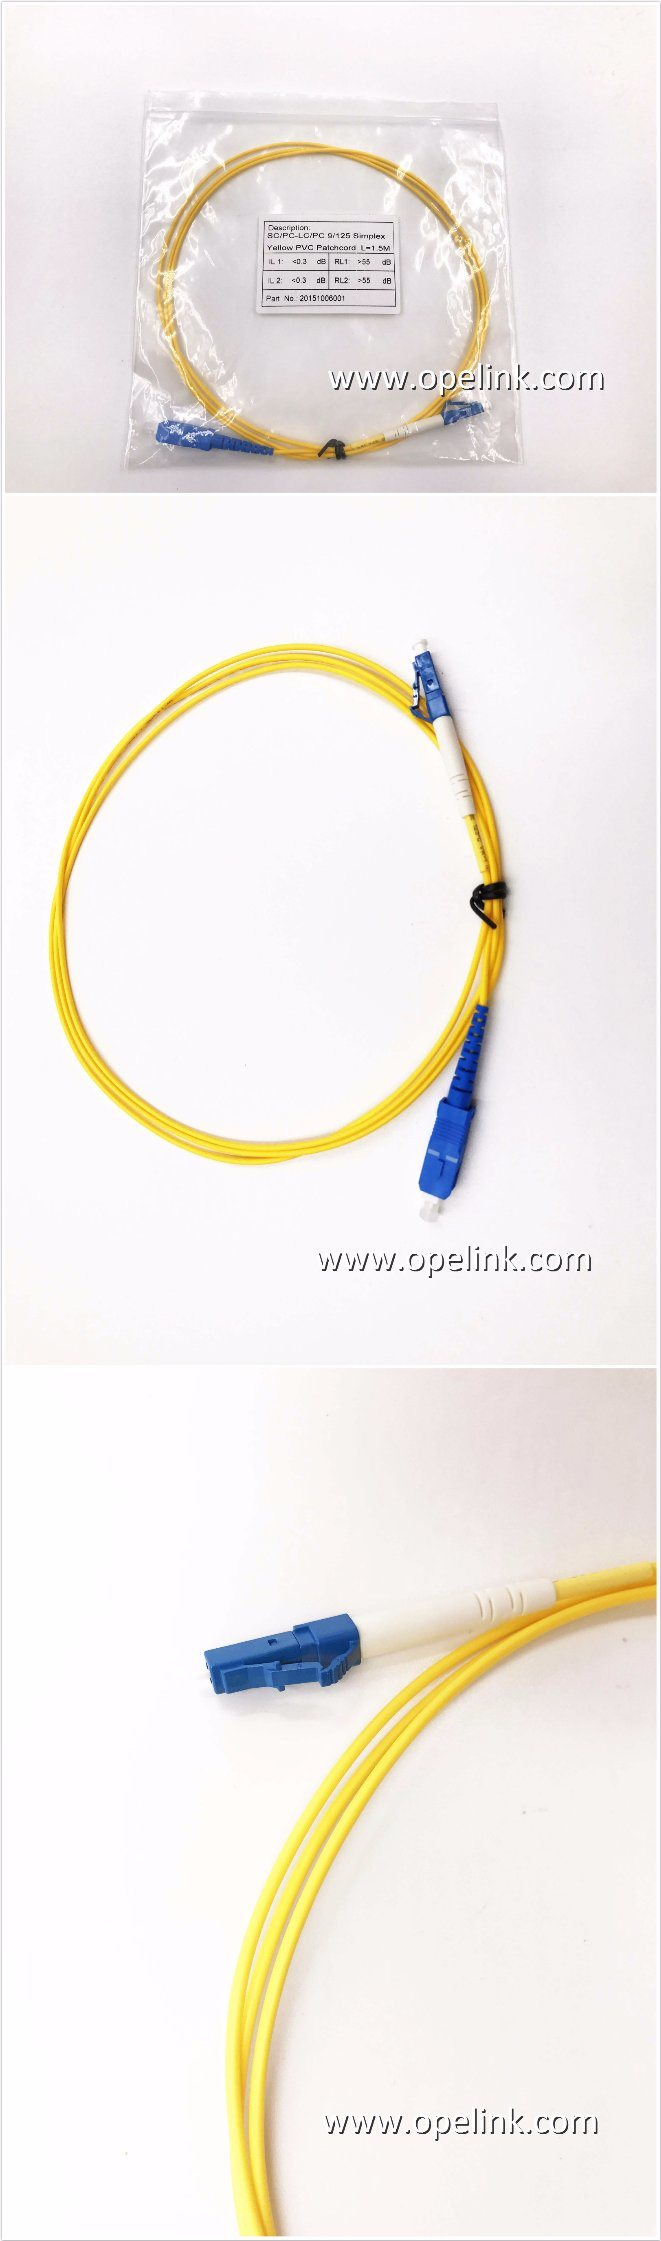 Fiber Optic Patchcord (Single Mode) Sc-LC